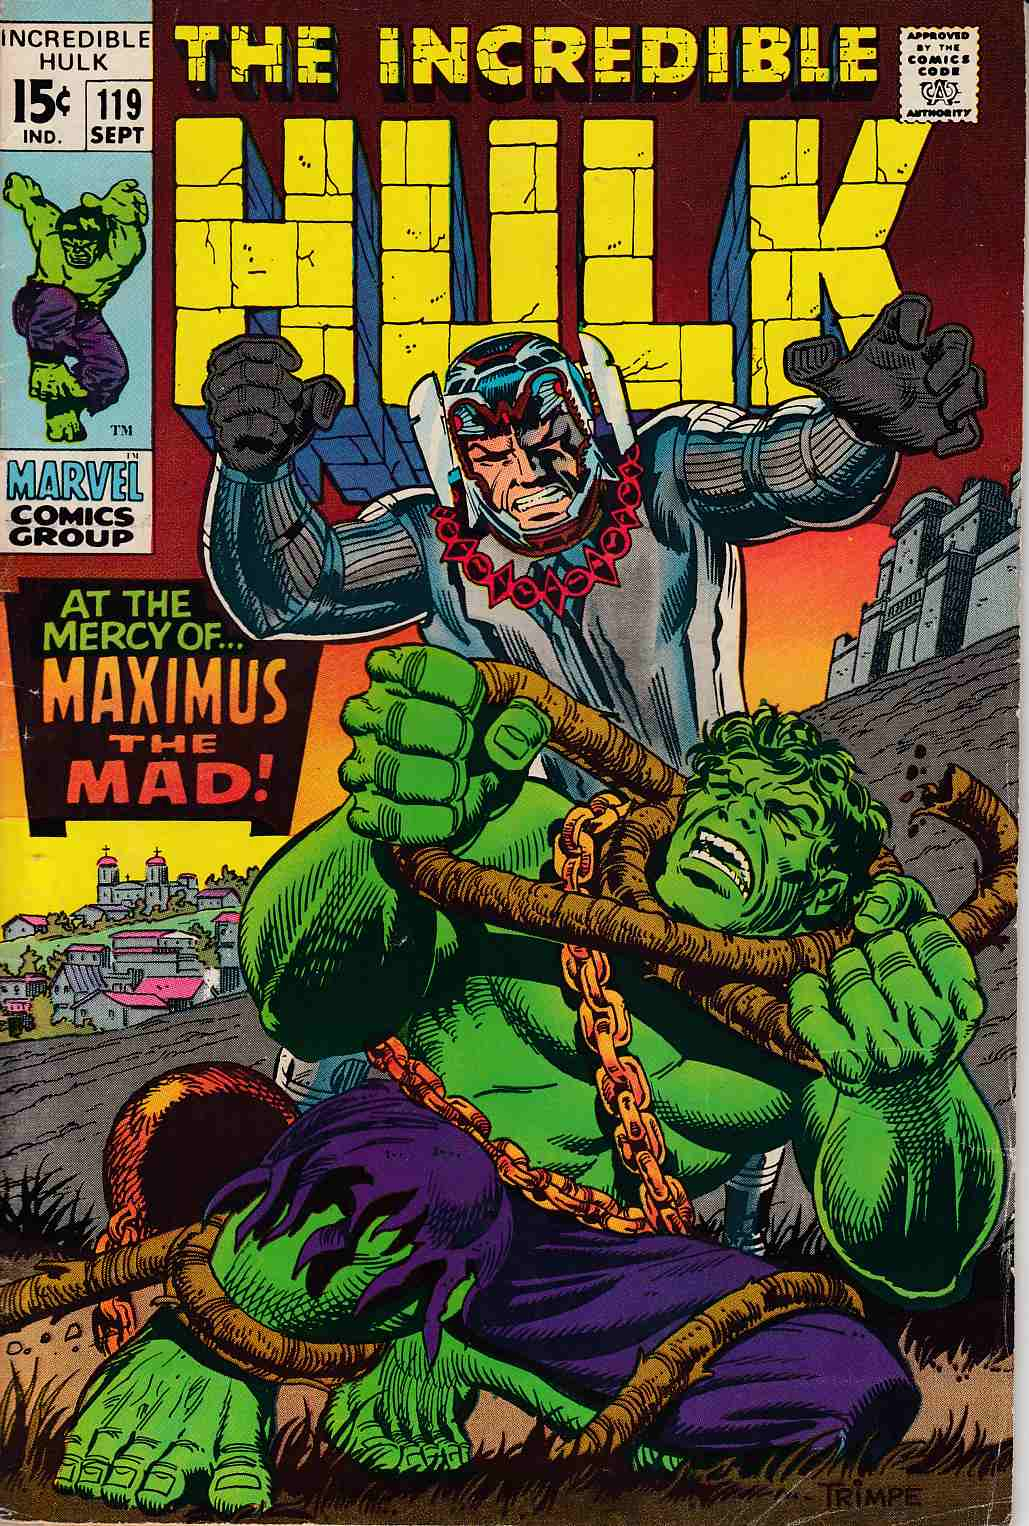 Incredible Hulk #119 Very Good (4.0) [Marvel Comic] THUMBNAIL